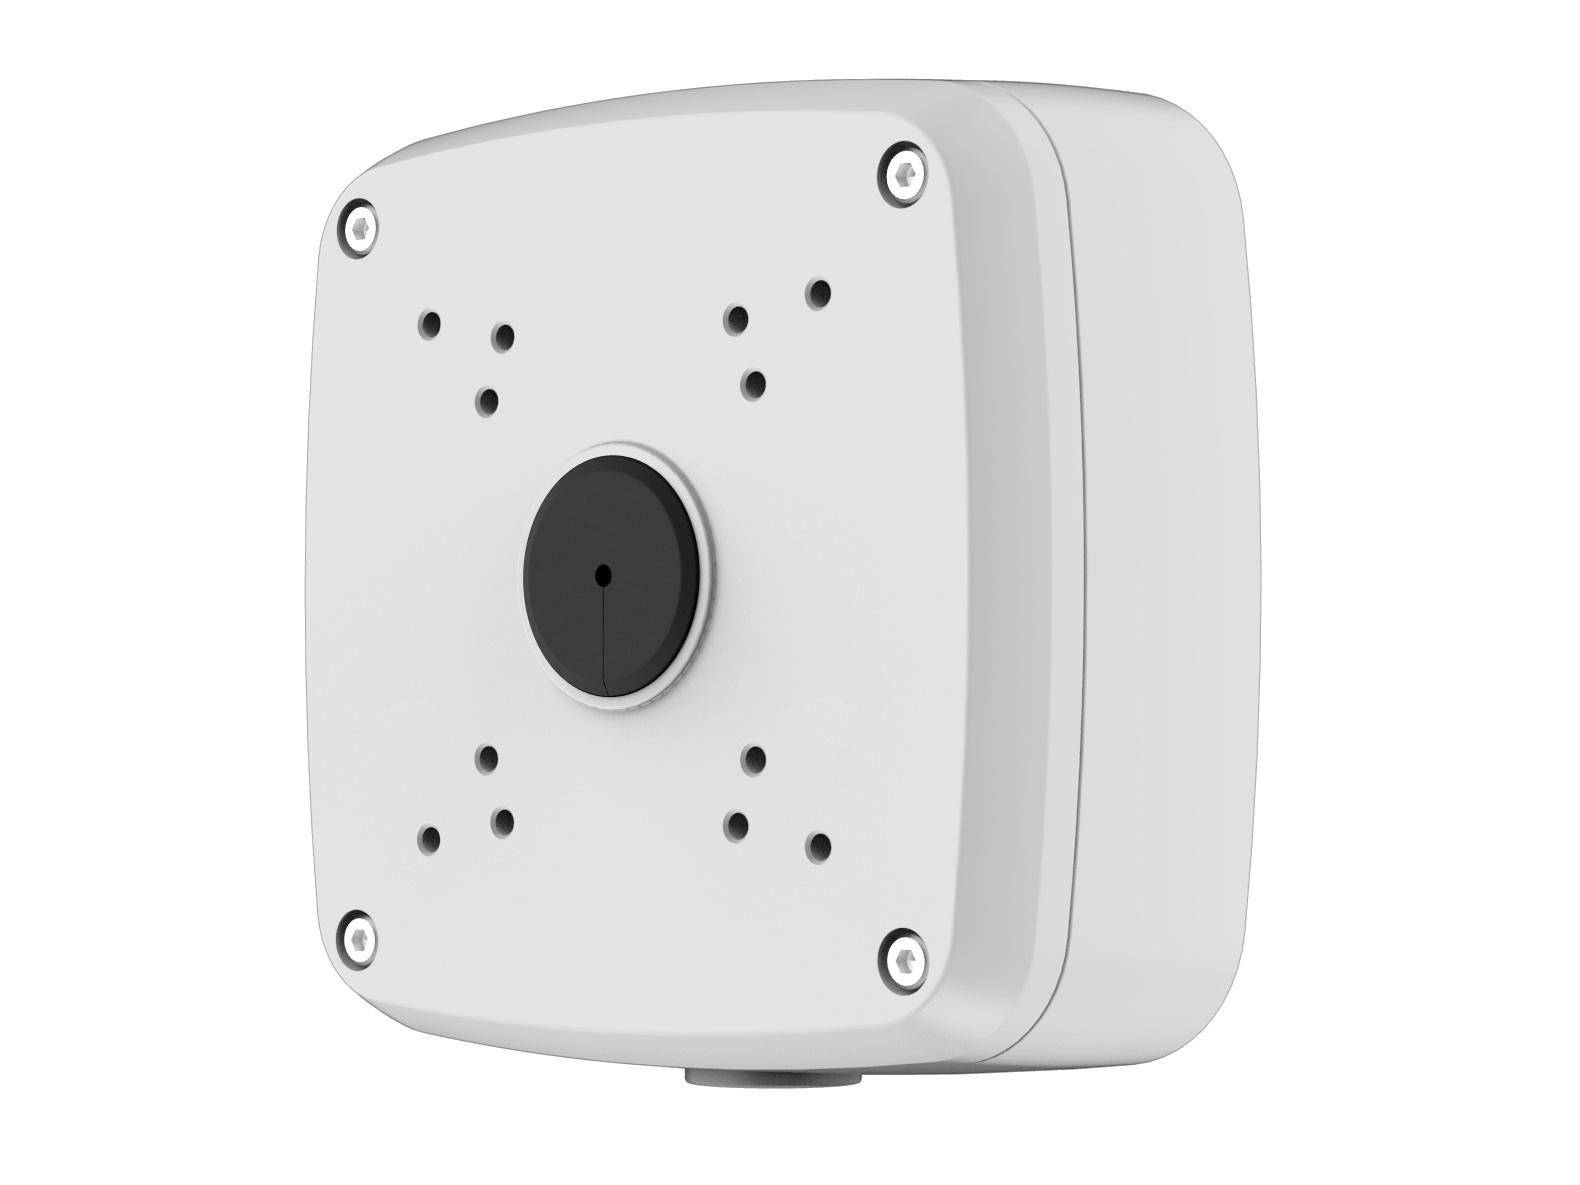 MNT-JUNCTION BOX 4 Square Junction Box For Ip Base Bullet Cameras by ICRealtime